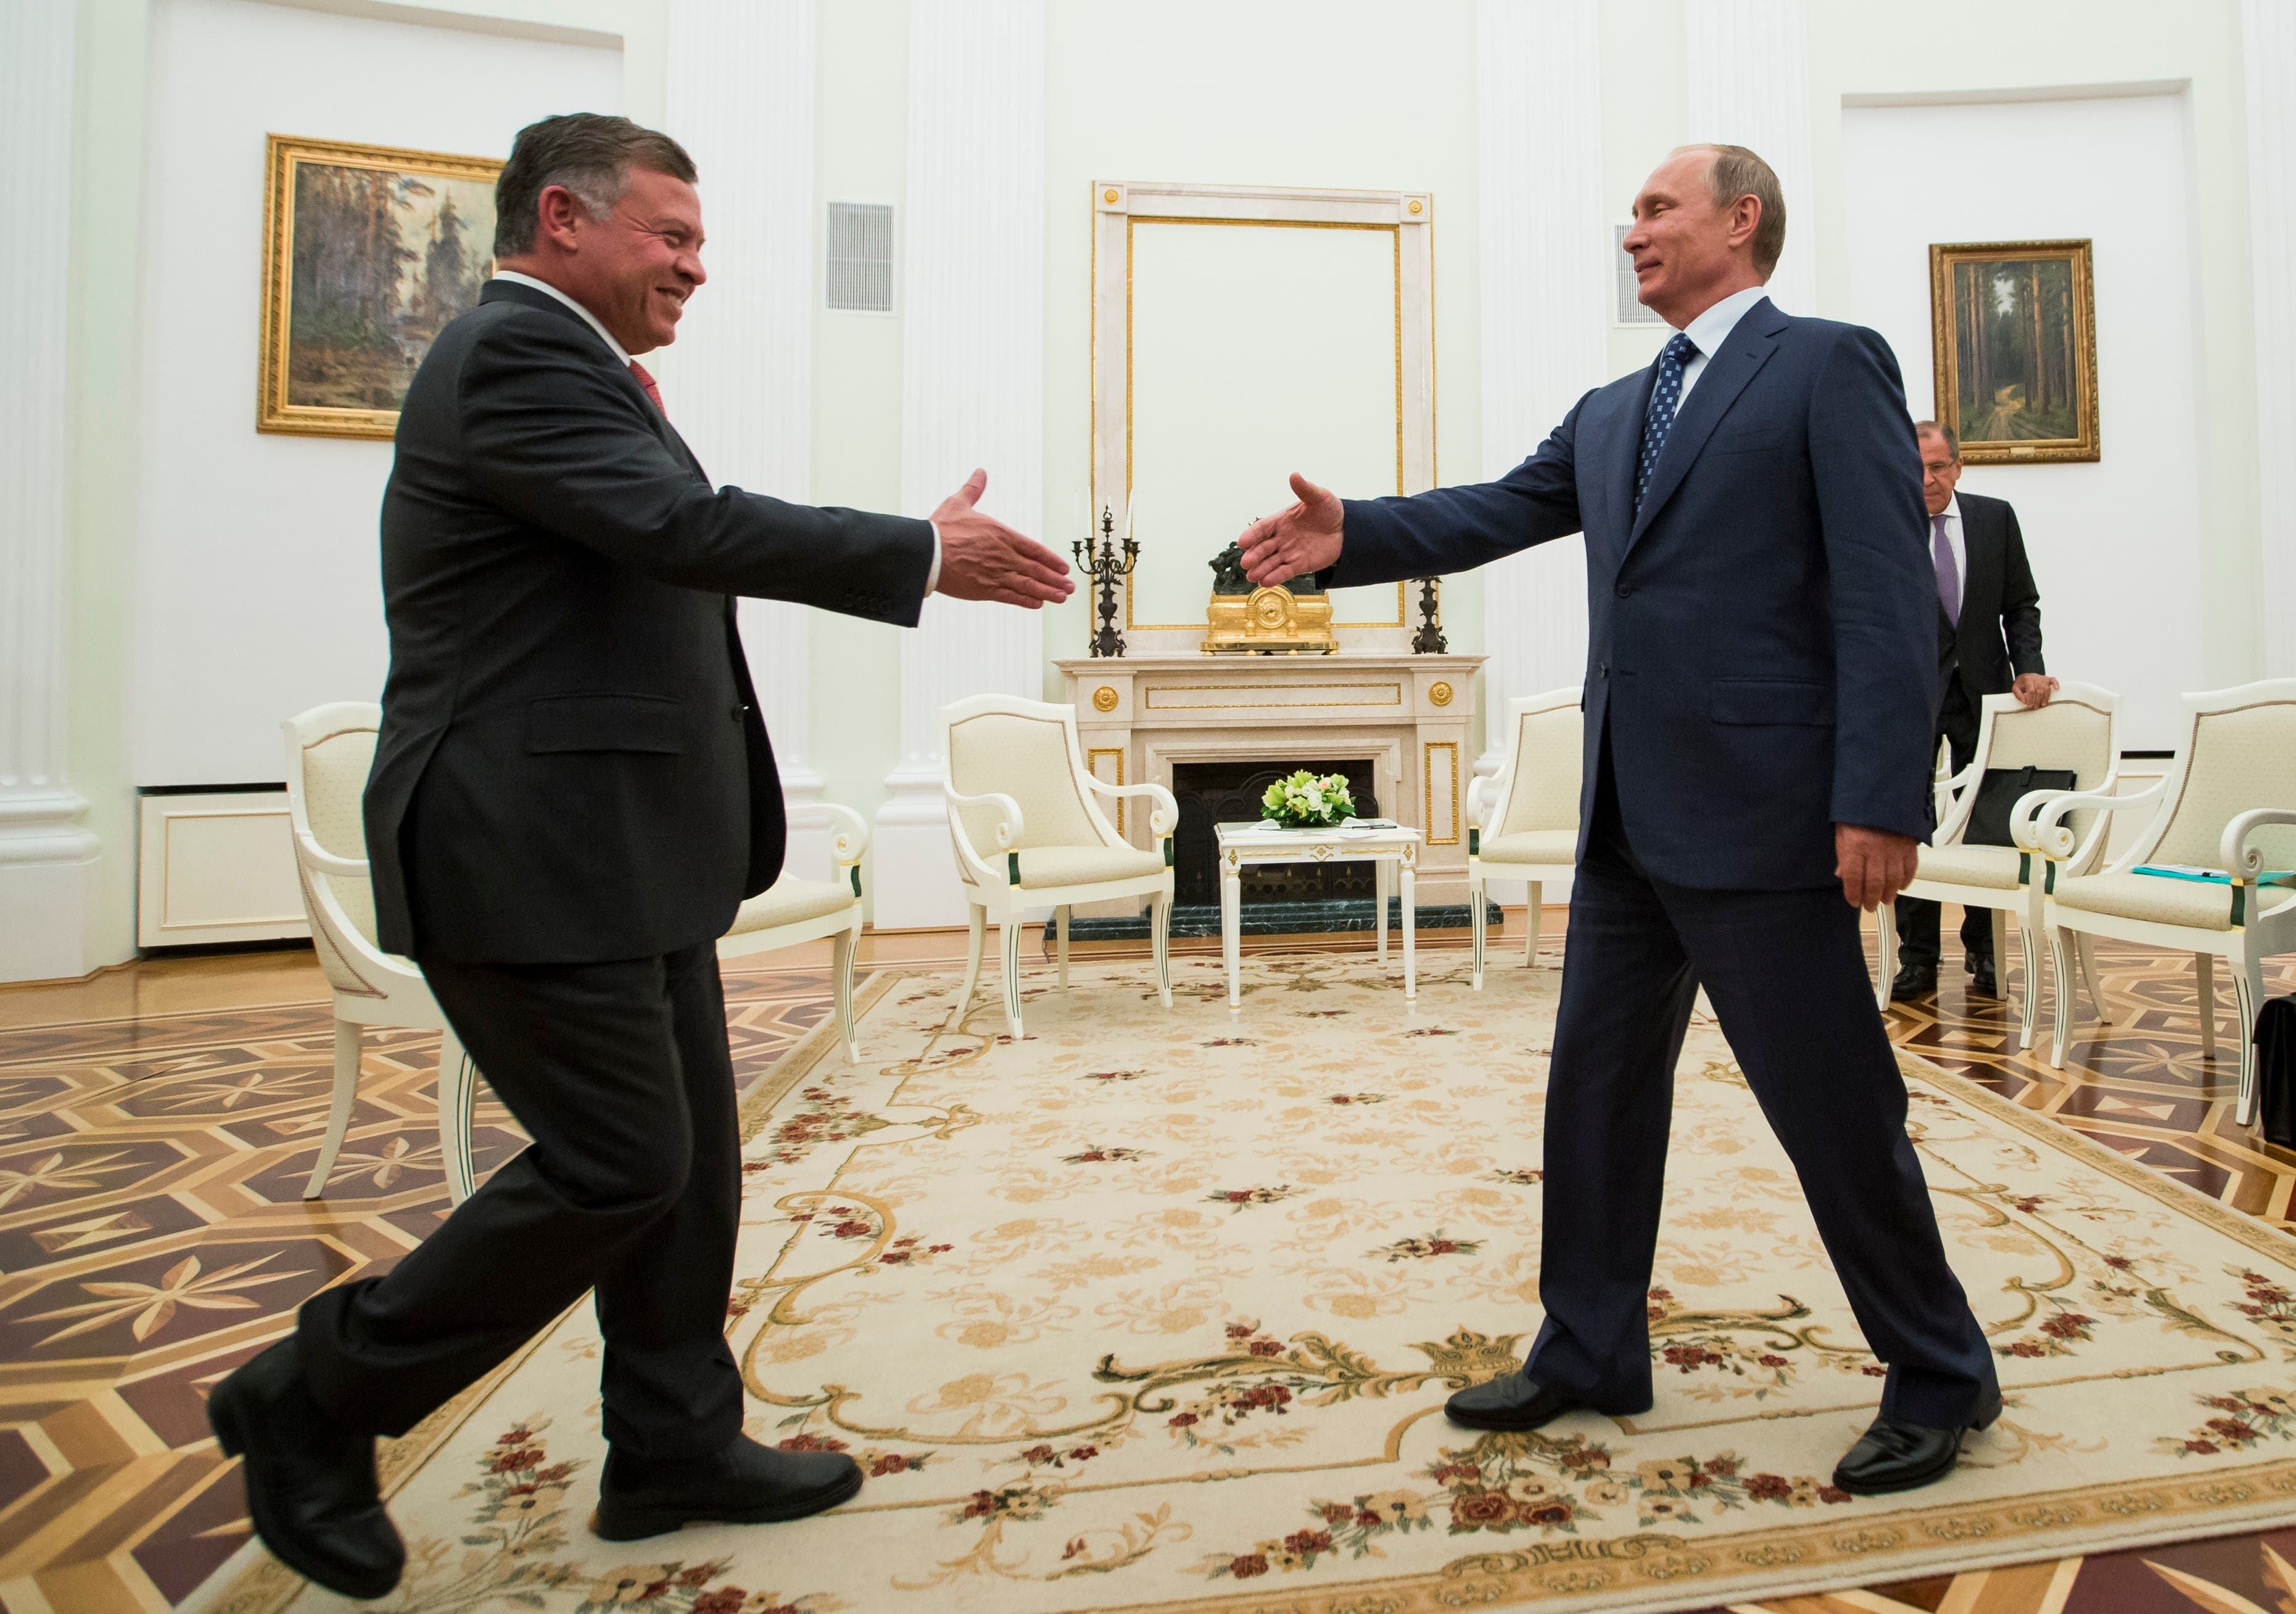 Russian President Vladimir Putin, right, shakes hands with King Abdullah II of Jordan during their meeting in the Kremlin, in Moscow, Russia,  Aug. 25, 2015.  (AP)